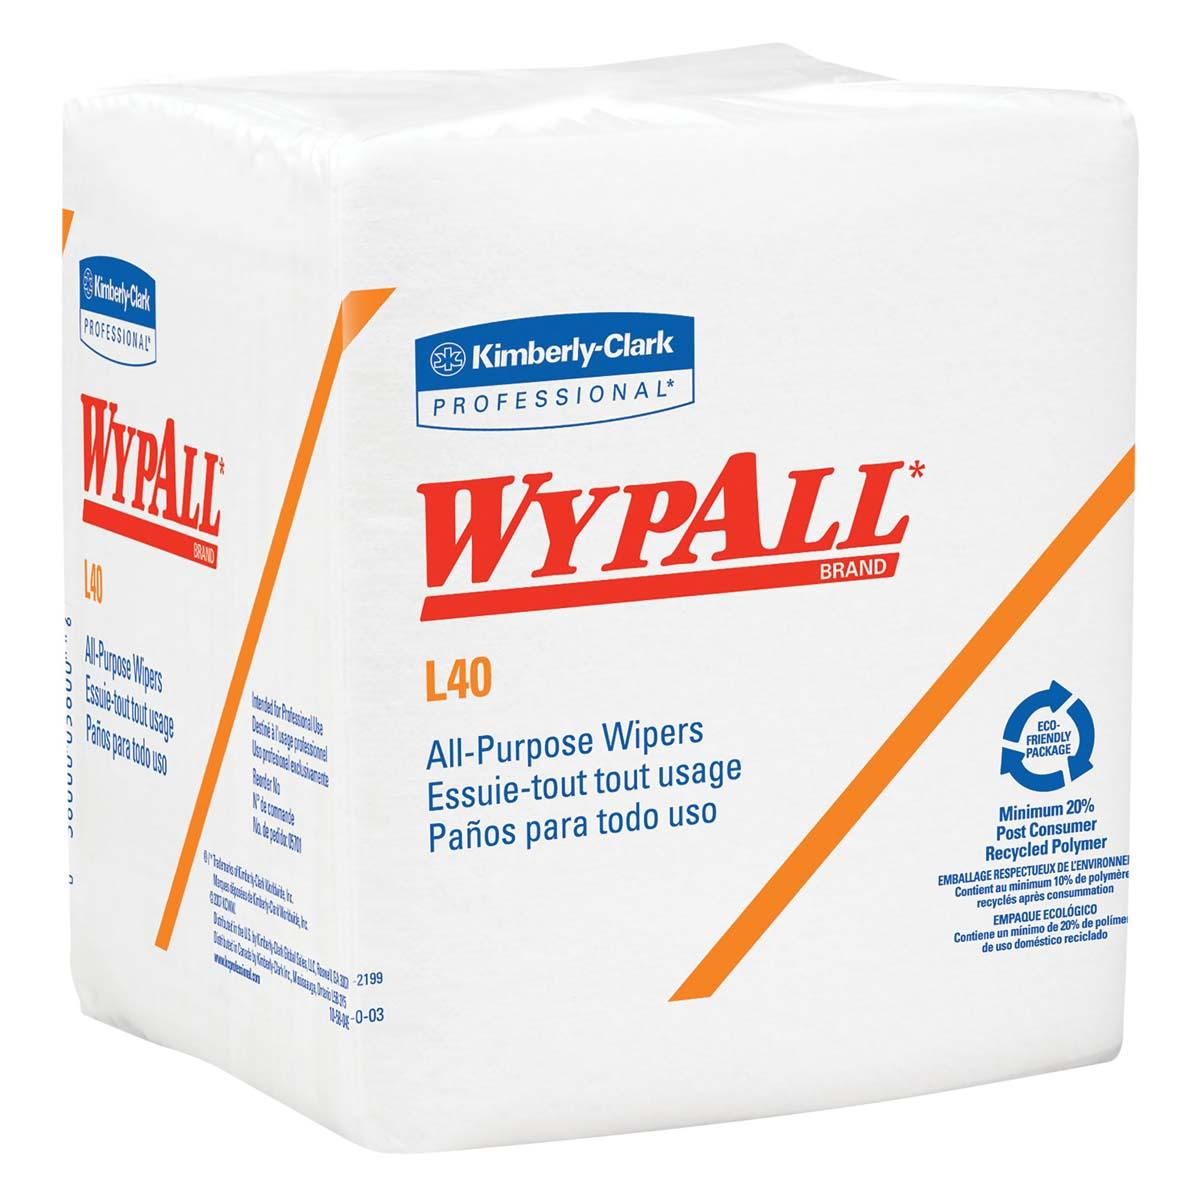 WypAll L40 Disposable Cleaning and Drying Towels (05600), Limited Use Wipers, White, 12 Packs per Case, 56 Sheets per Pack, 672 Sheets Total